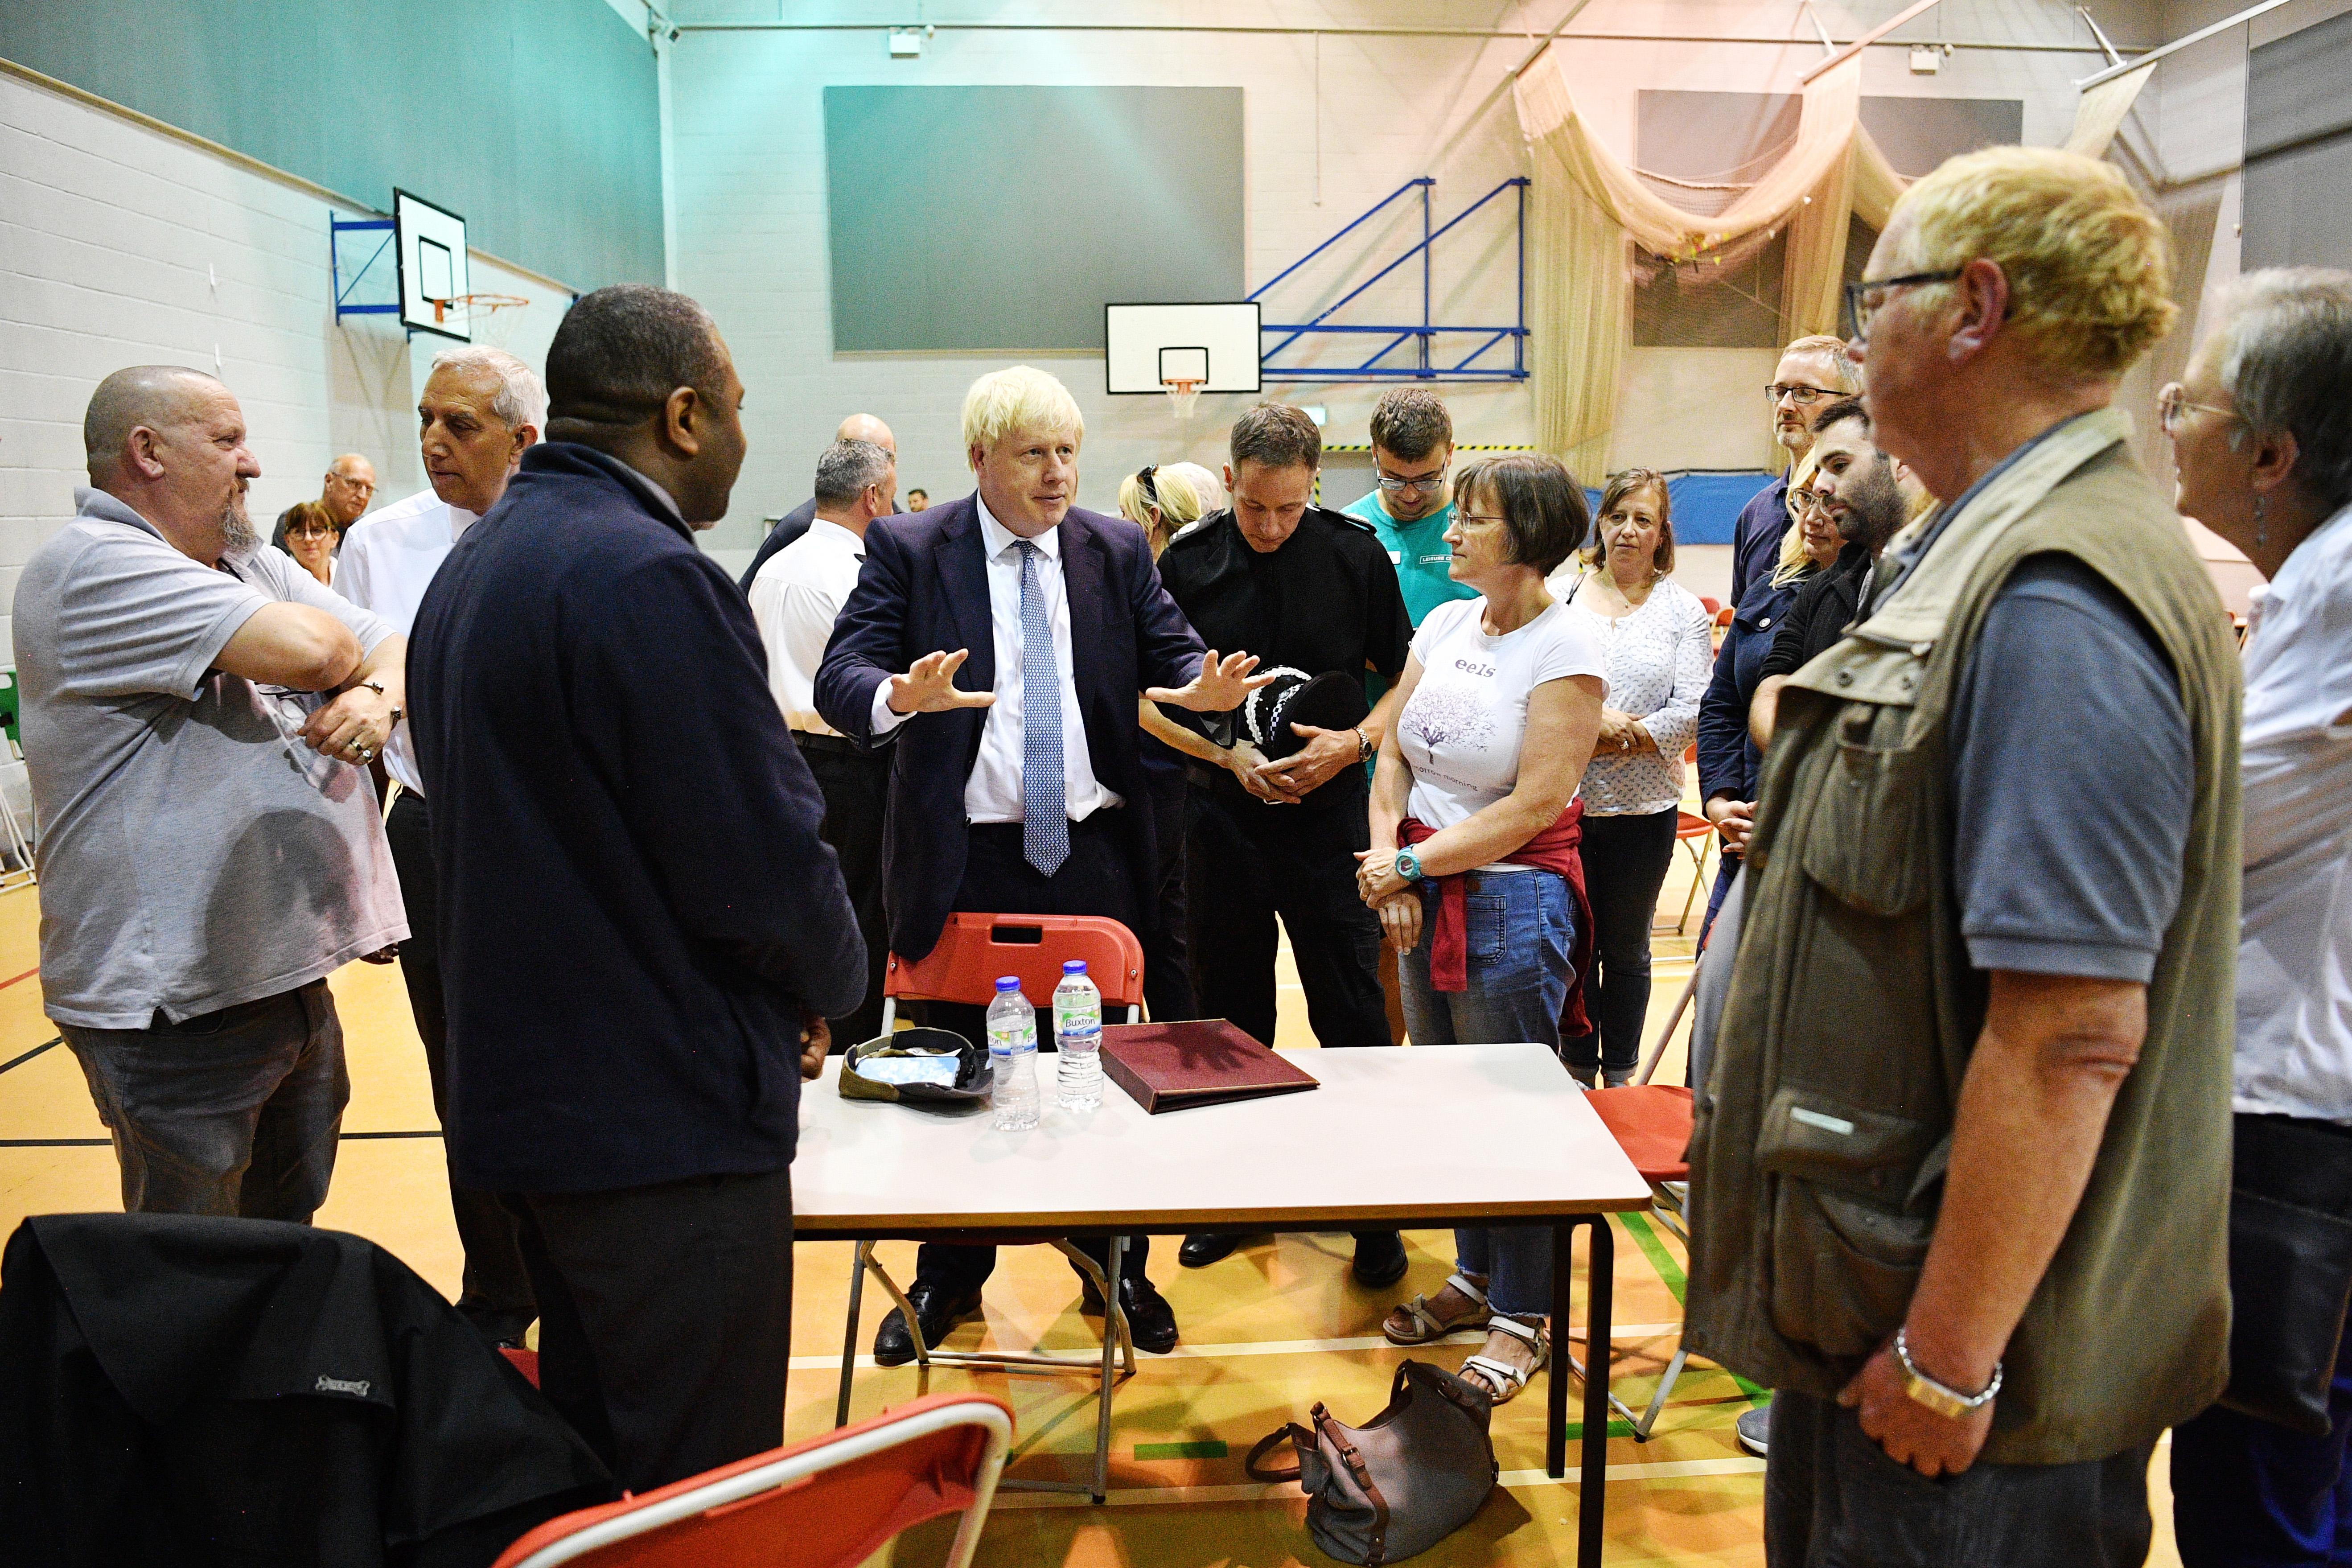 WHALEY BRIDGE, ENGLAND - AUGUST 02: Prime Minister Boris Johnson meets with rescue crews and local residents at Chapel-en-Le-frith High School as work continues at Toddbrook reservoir following a severe structural failure after heavy rain, on August 02, 2019 in Whaley Bridge, England. The town's 6,500 people were forced to leave their homes after yesterday's partial collapse of the dam at Toddbrook Reservoir, in Derbyshire. Engineers have been pumping water from the reservoir overnight to reduce the water level. (Photo by Leon Neal - WPA Pool/Getty Images)